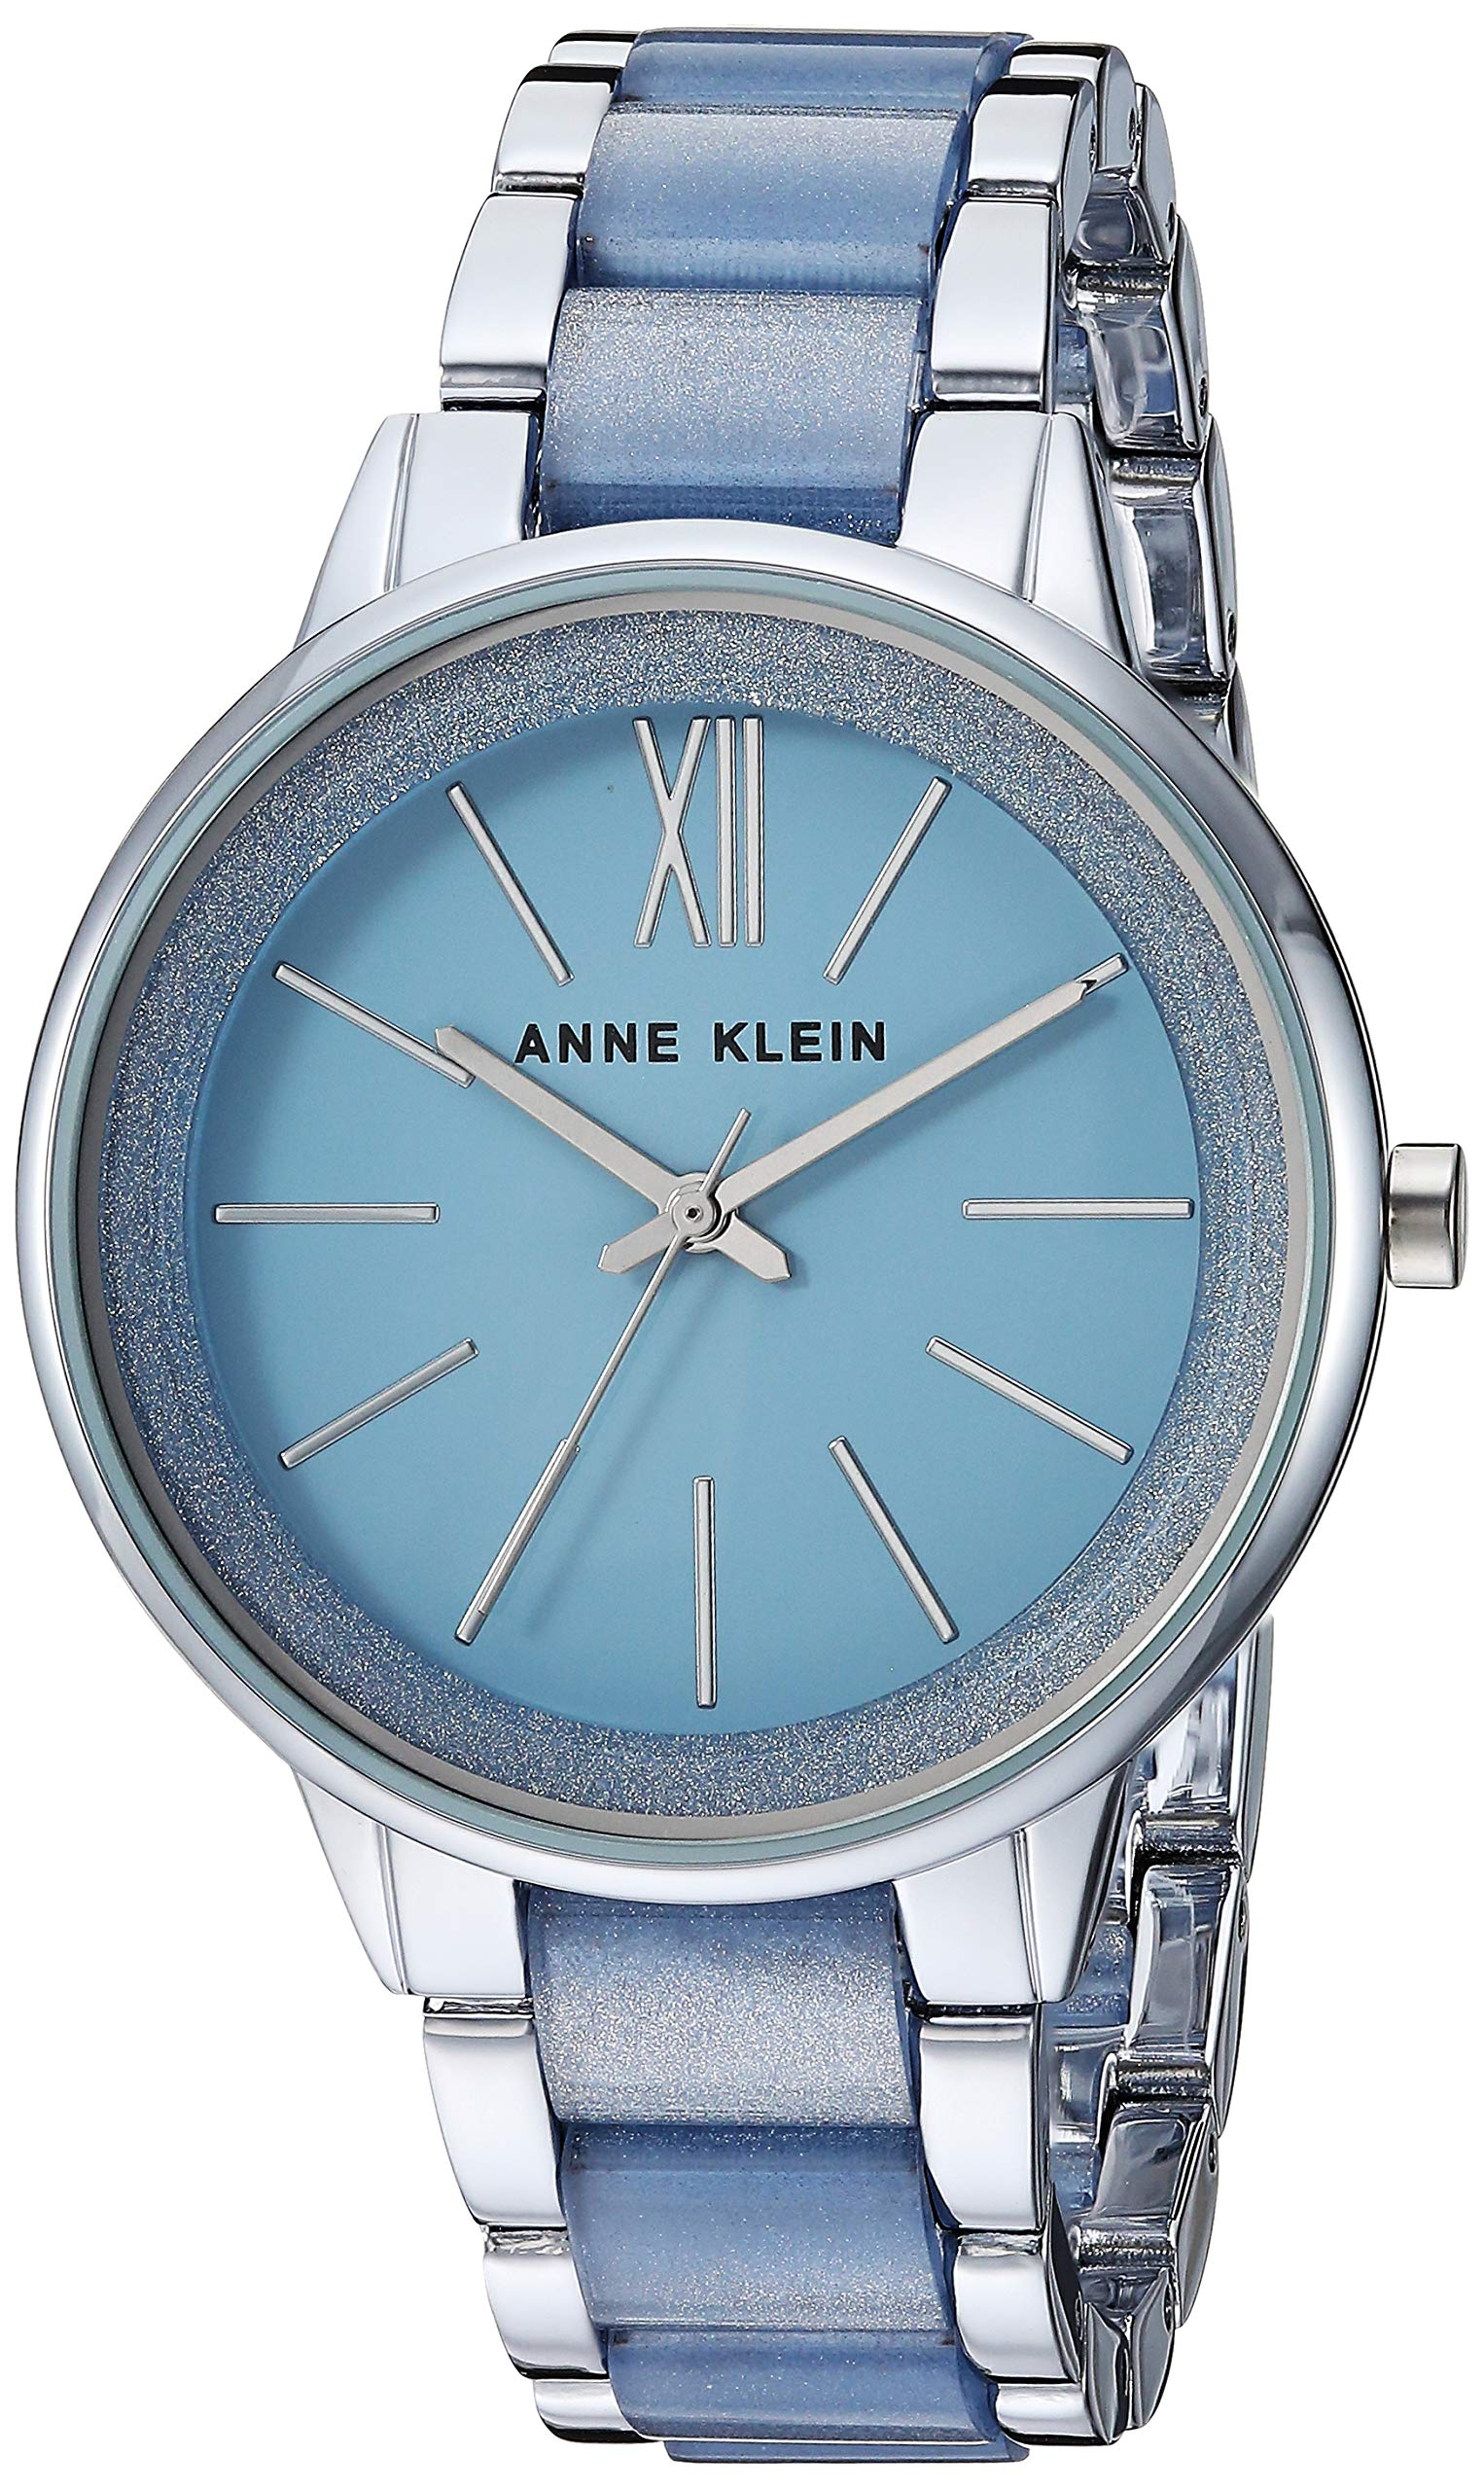 Anne Klein Women's AK/1413LBSV Silver-Tone and Light Blue Resin Bracelet Watch by Anne Klein